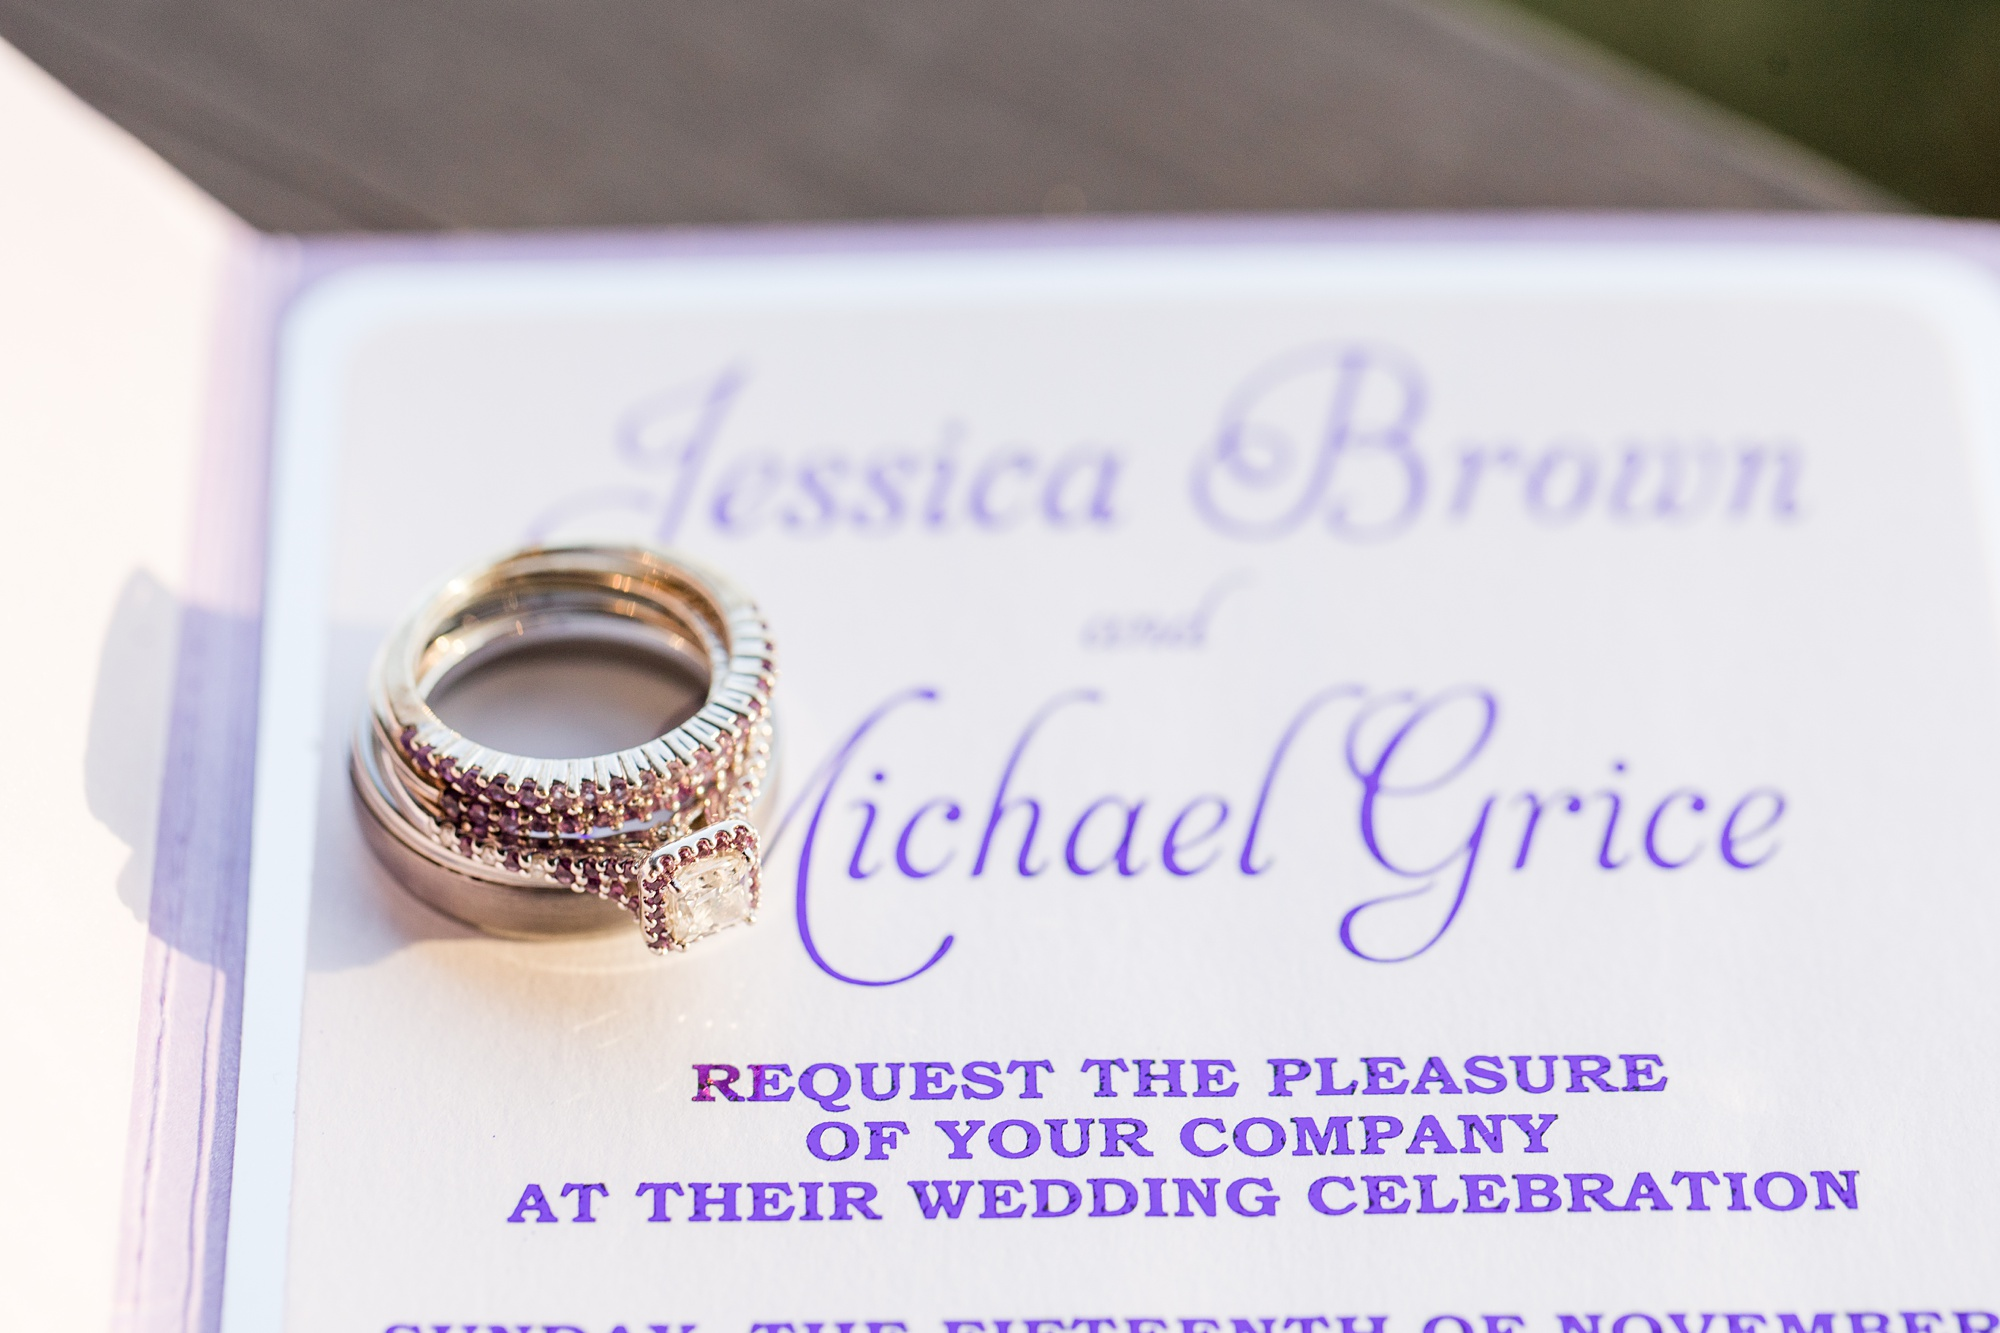 details for Alabama wedding day with purple lettering